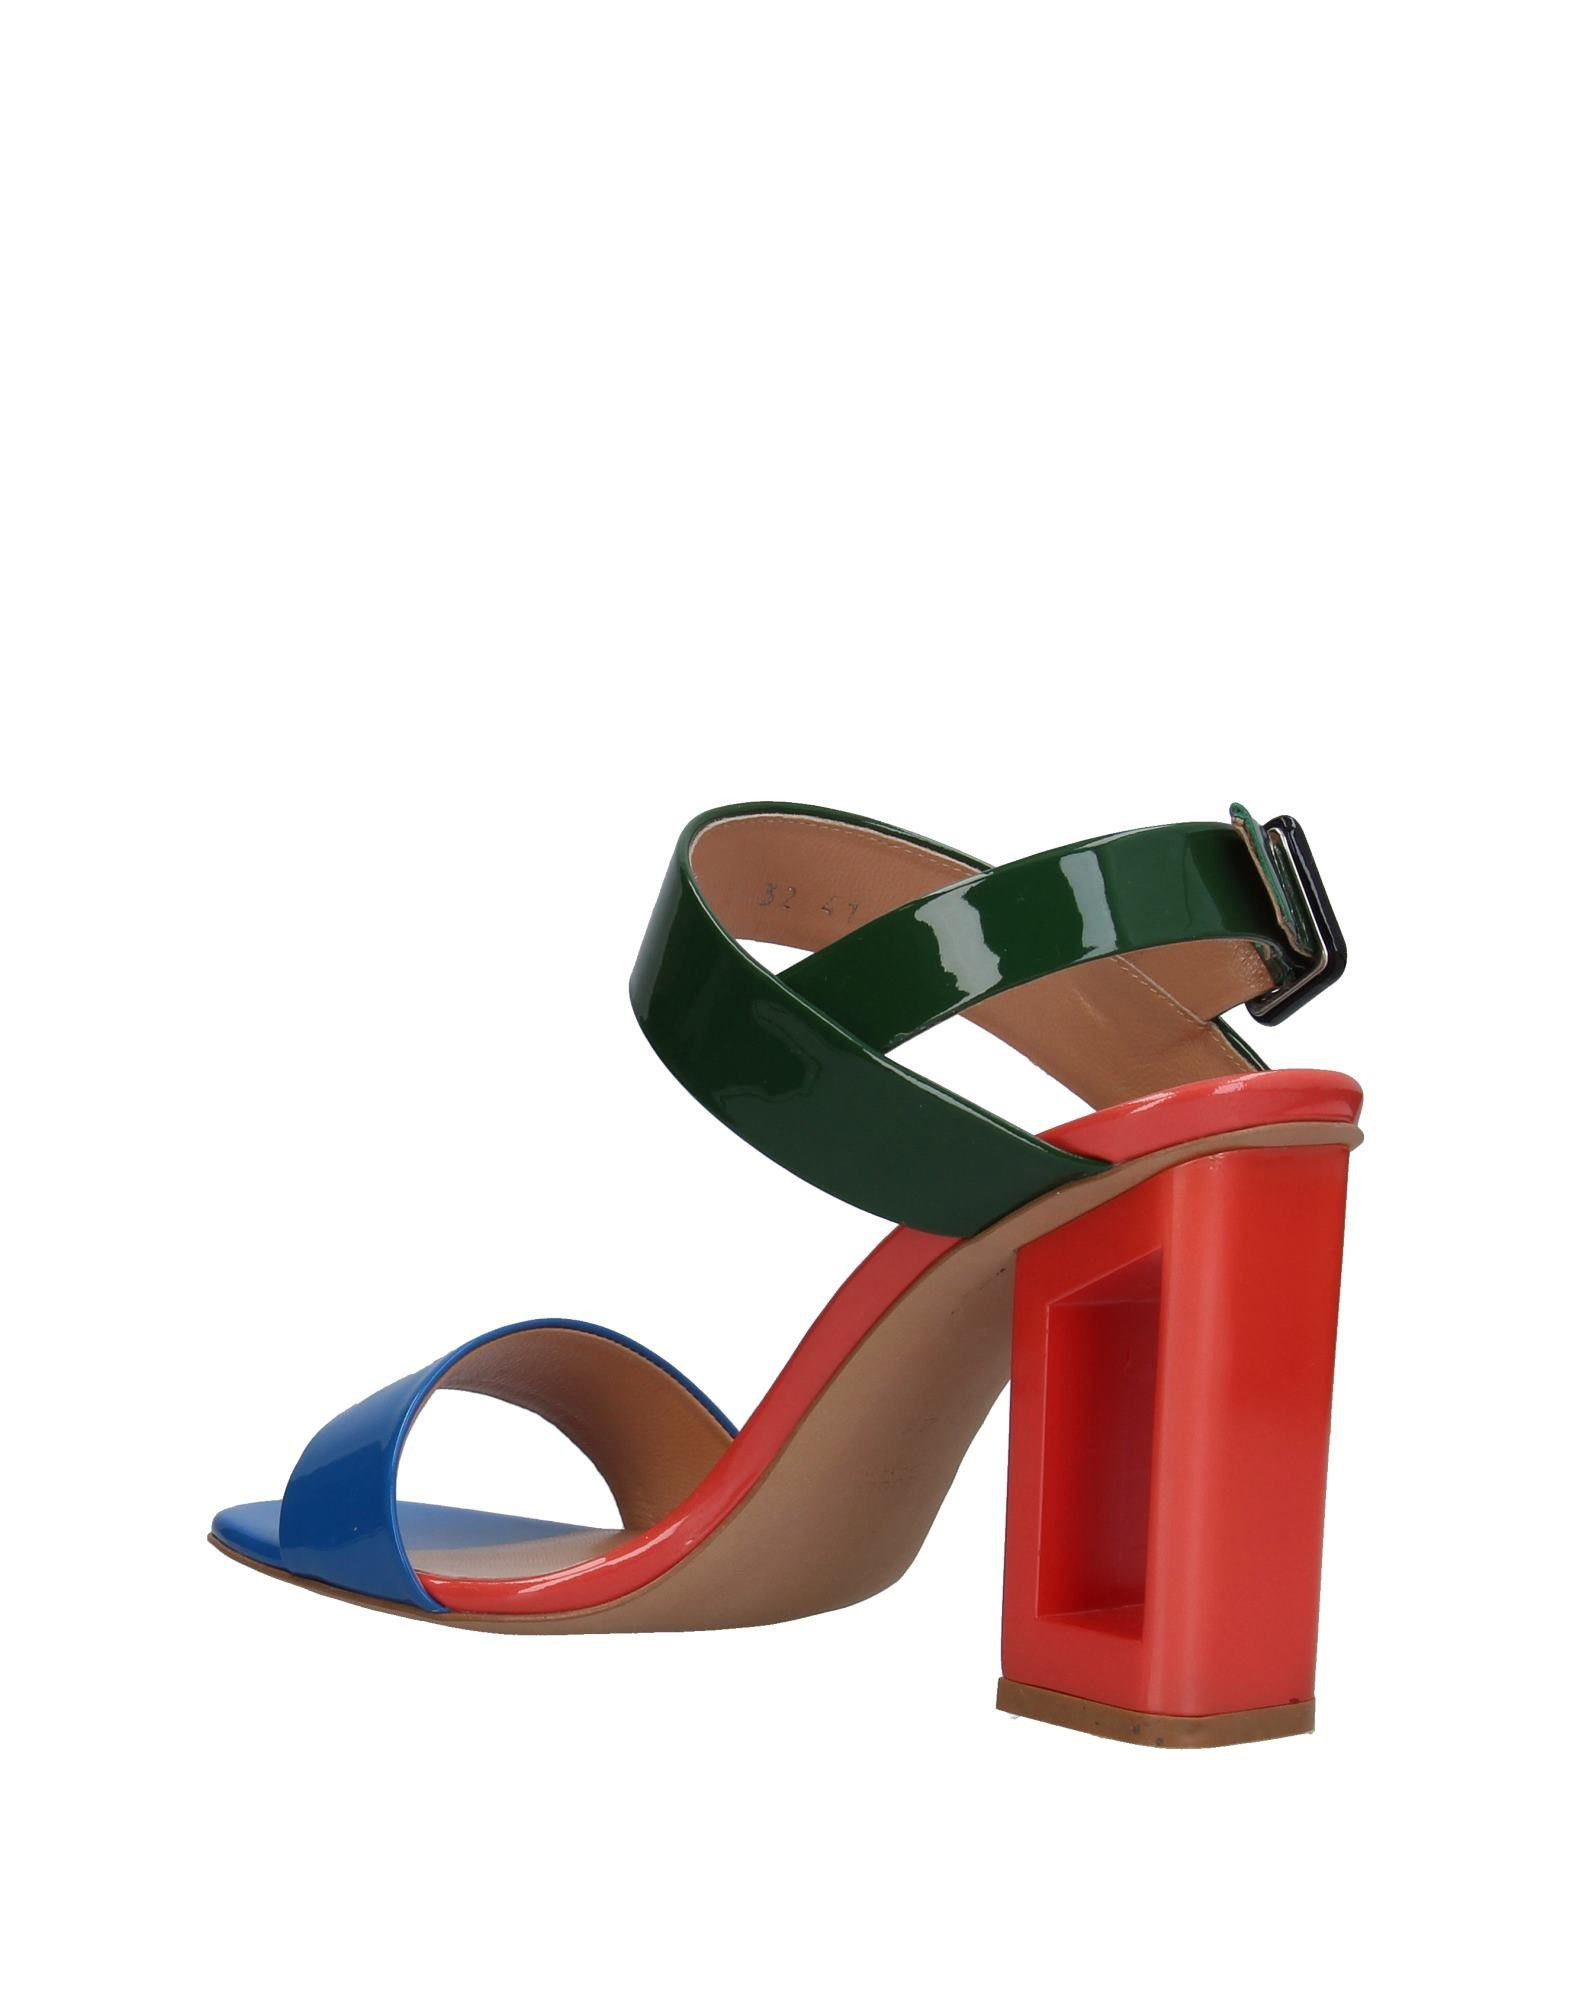 CHAUSSURES - SandalesDivino w2A0aN90L